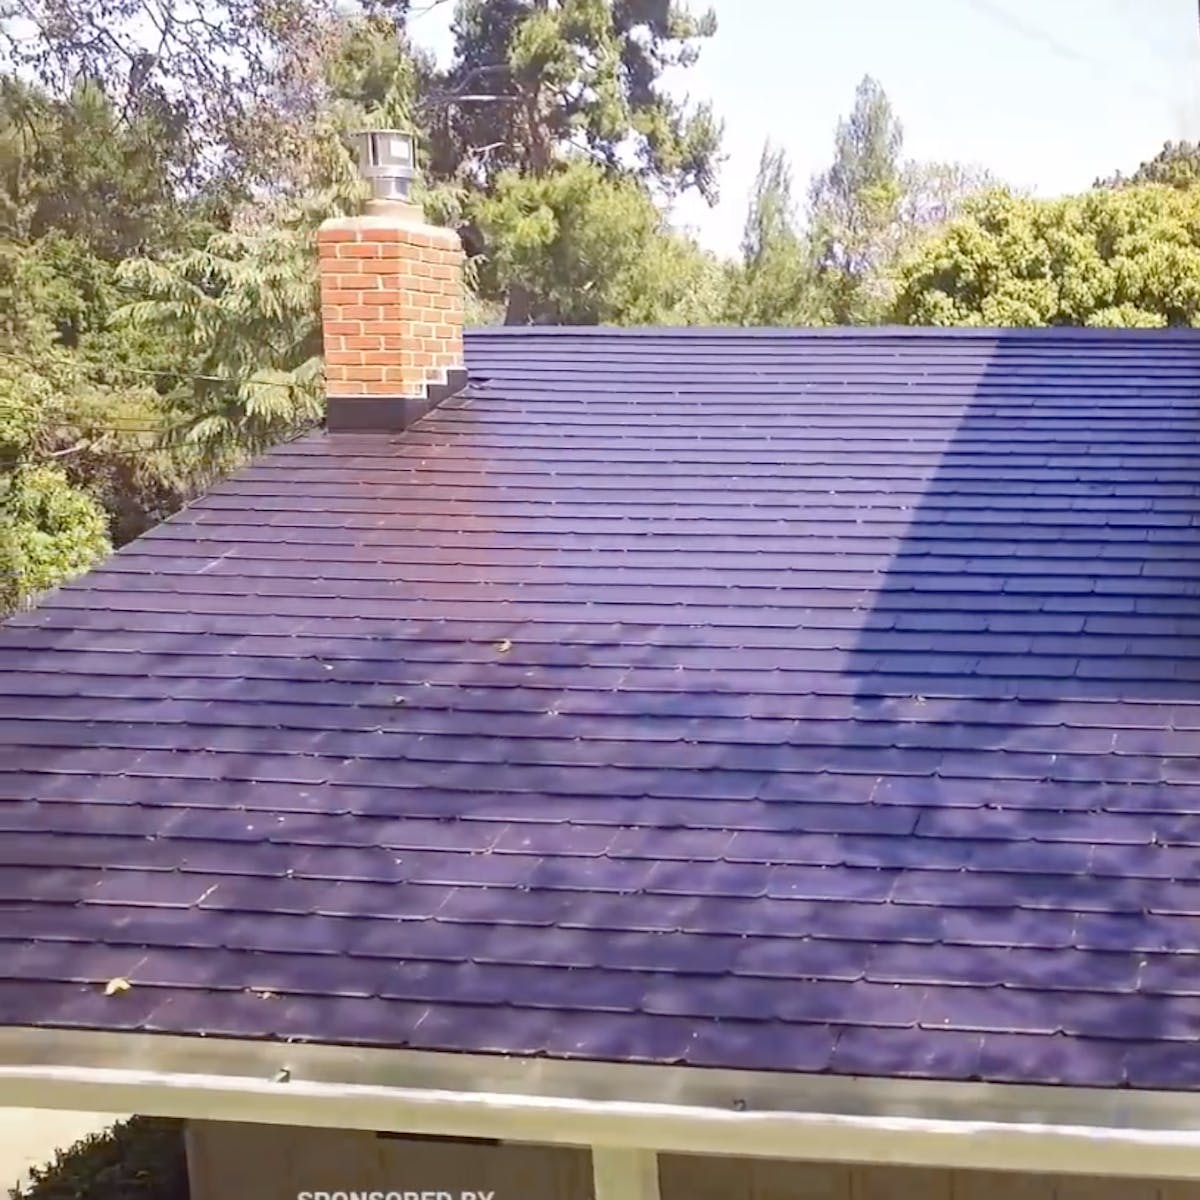 Solar Panel Roof Cost >> Tesla Solar Roof Owner Reveals The Cost And Surprising Savings In